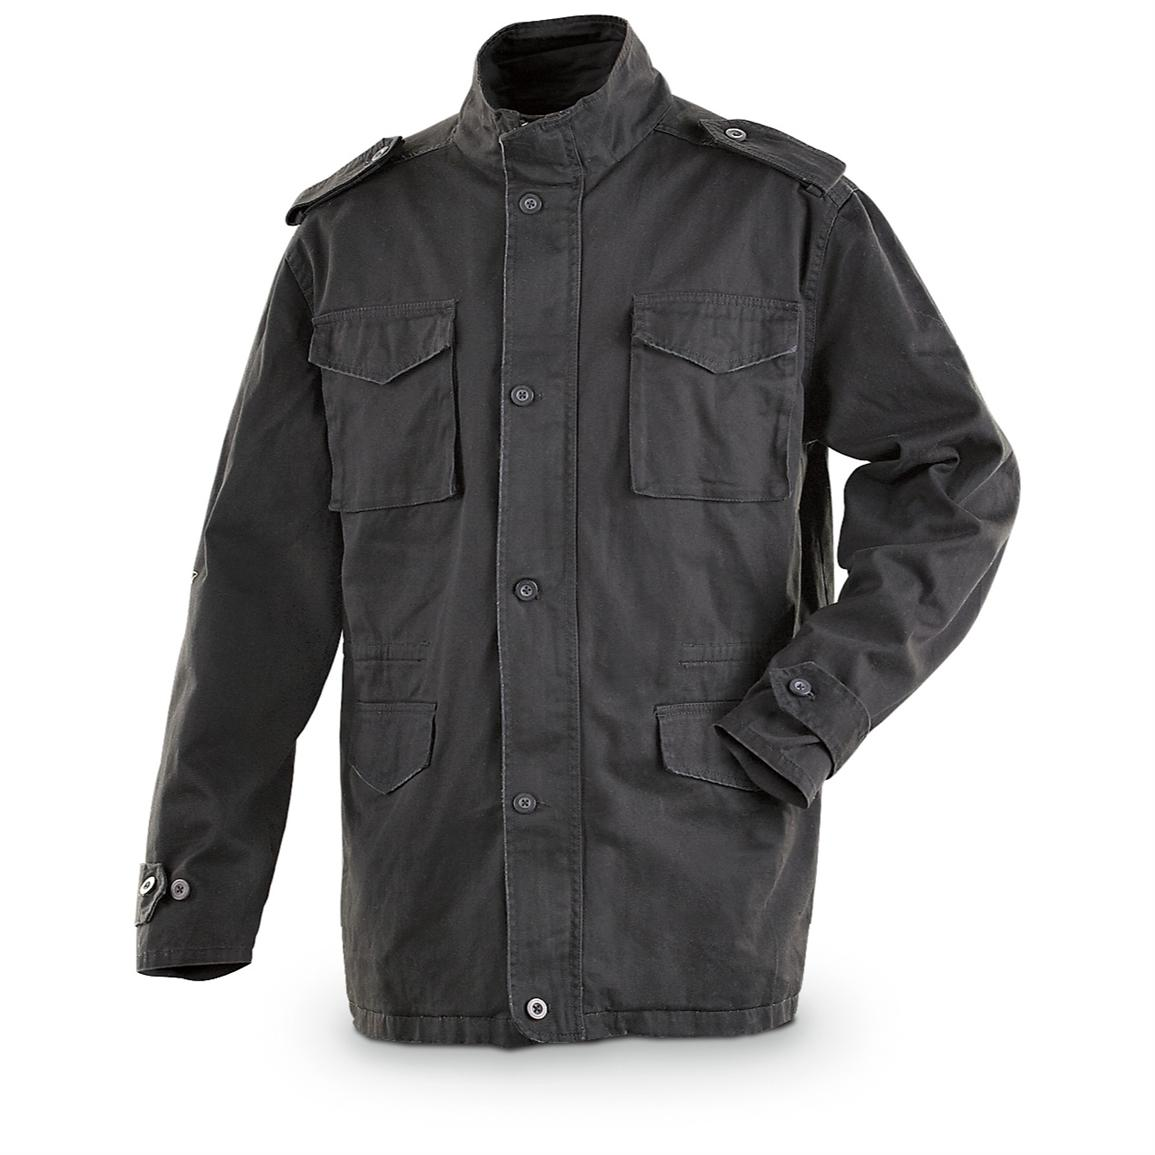 P.J. Mark® Distressed Recruit Military - style Jacket ...